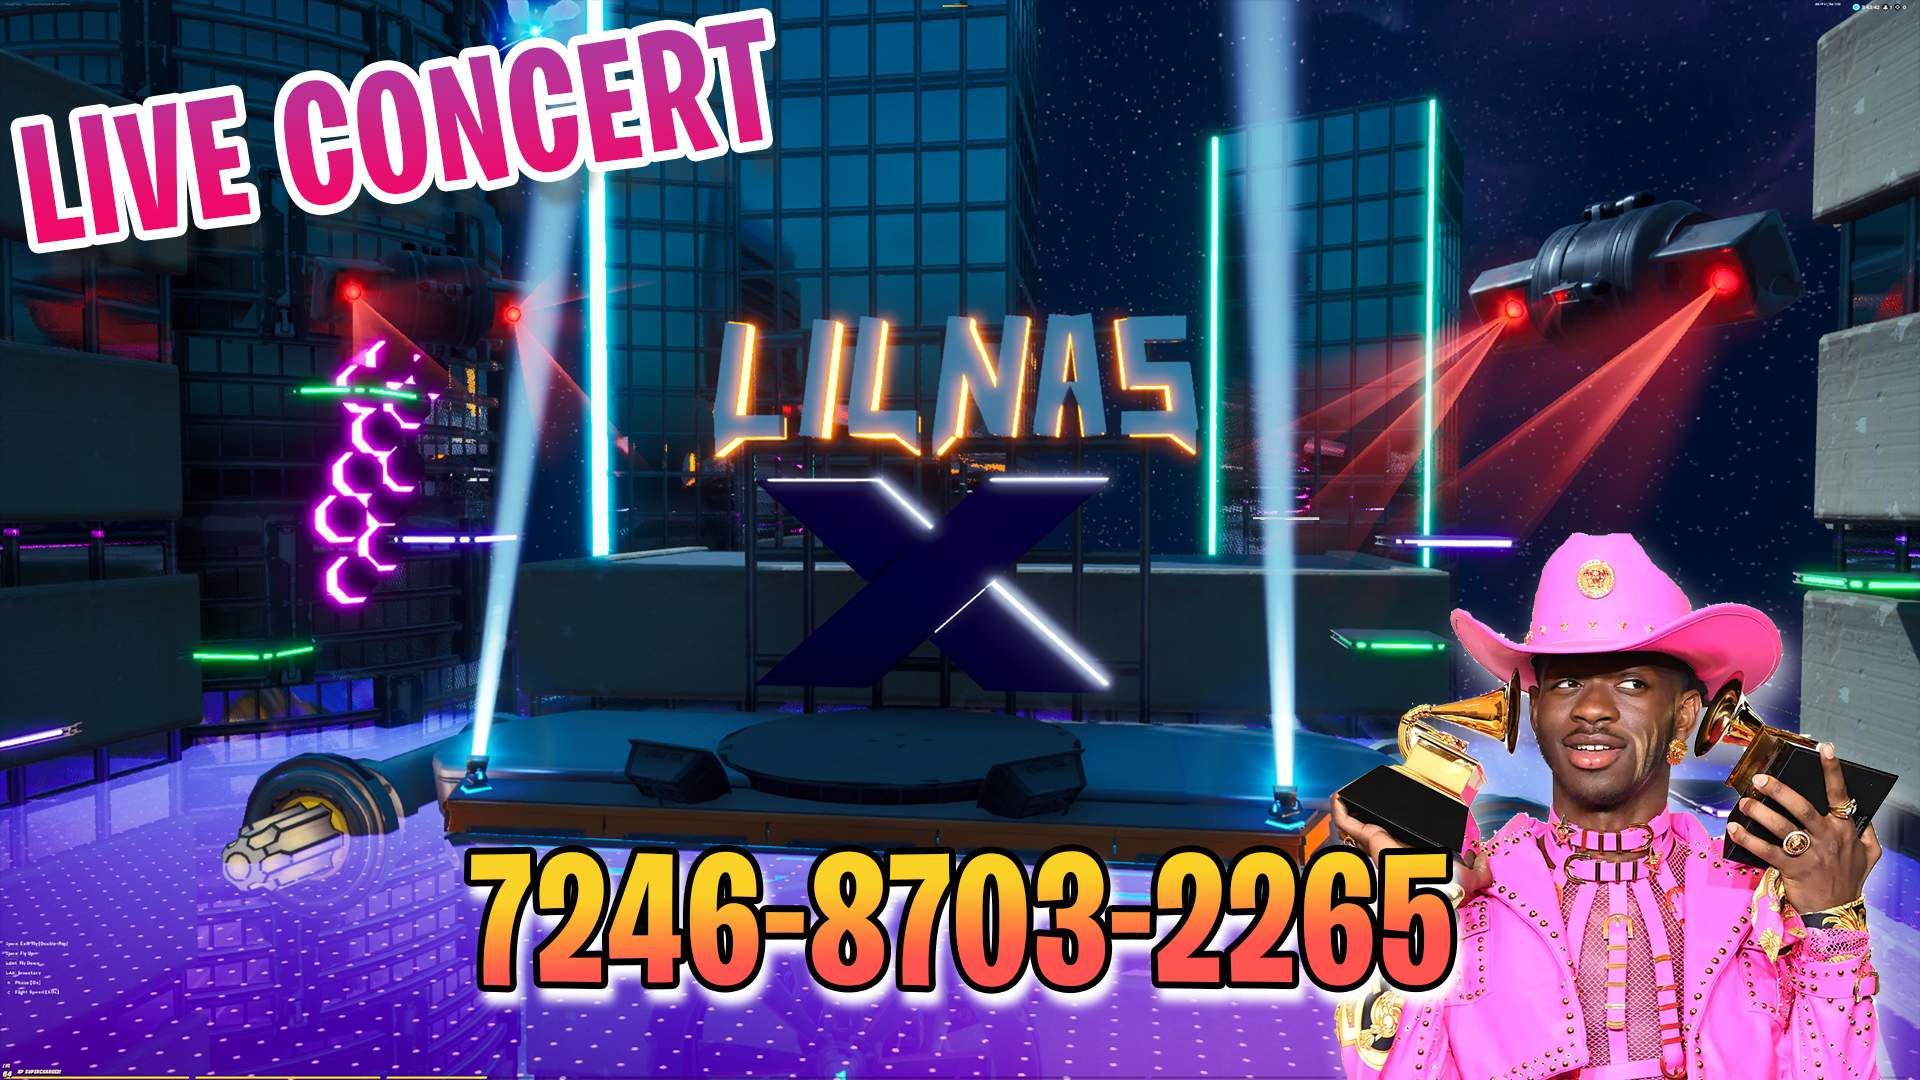 LIL NAS X CONCERT (FROM ROBLOX)